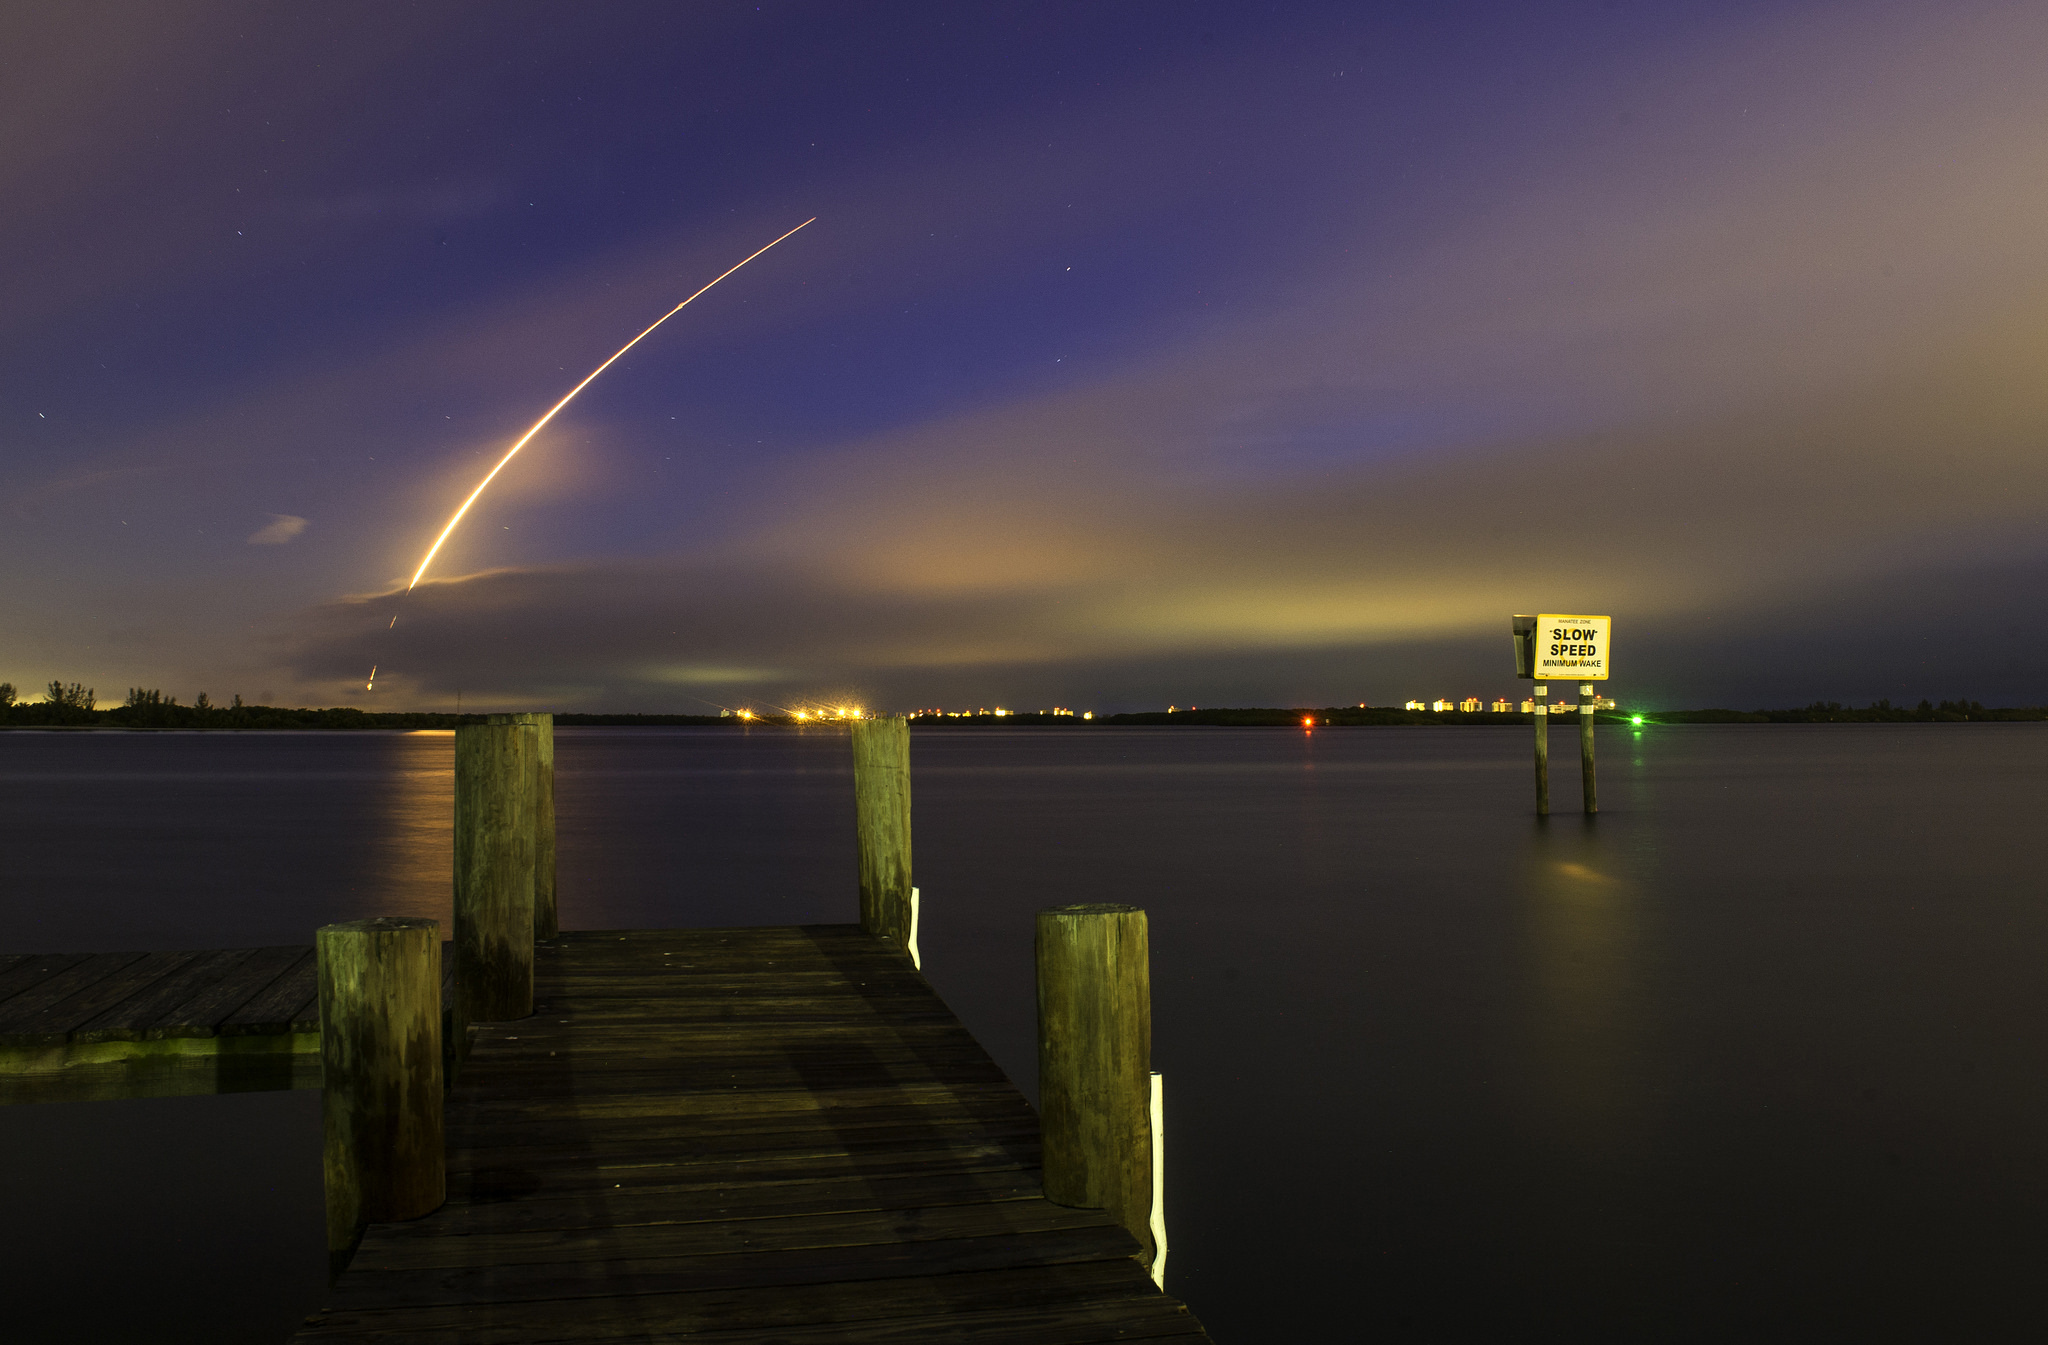 Atlas V rocket launches on October 2, 2015